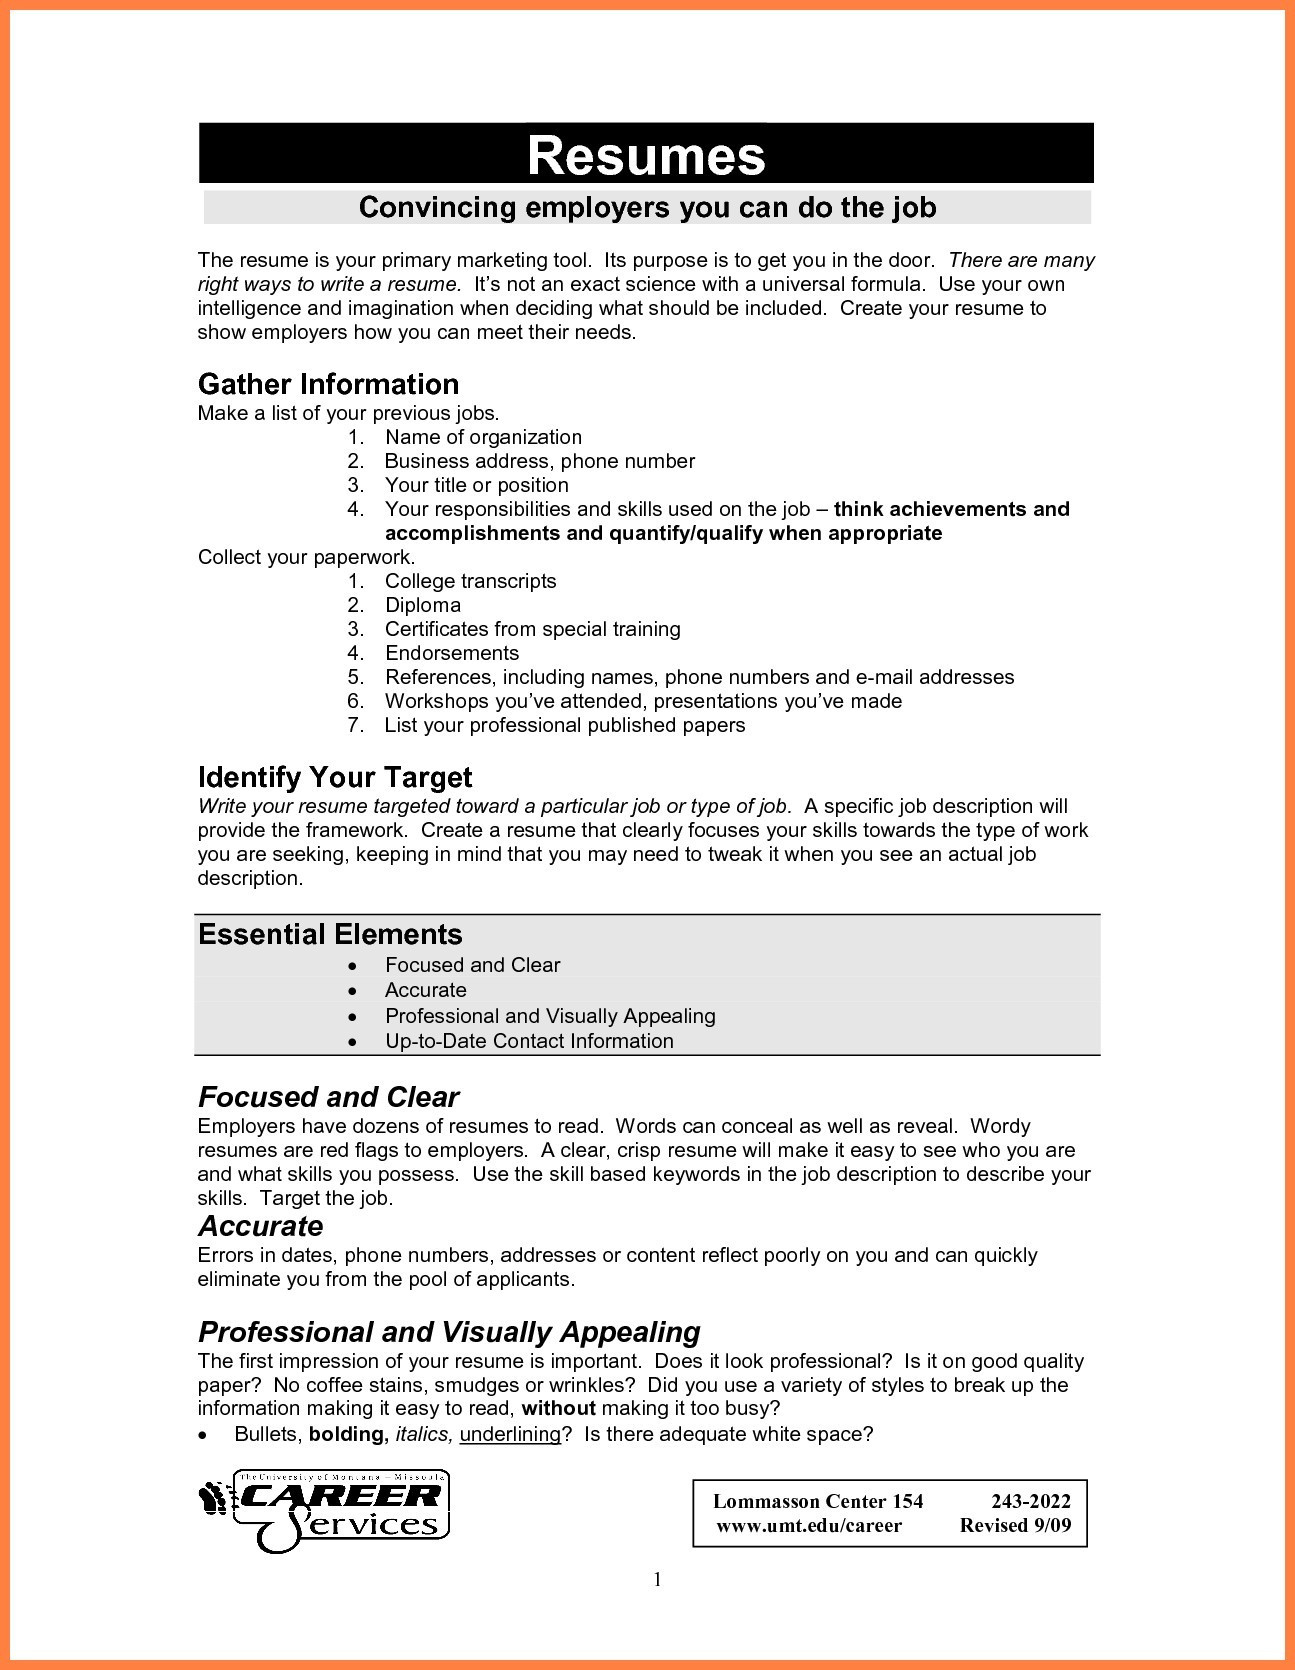 Targeted Resume Template Word - How to Make A Resume In Microsoft Word Perfect How to Make A Resume